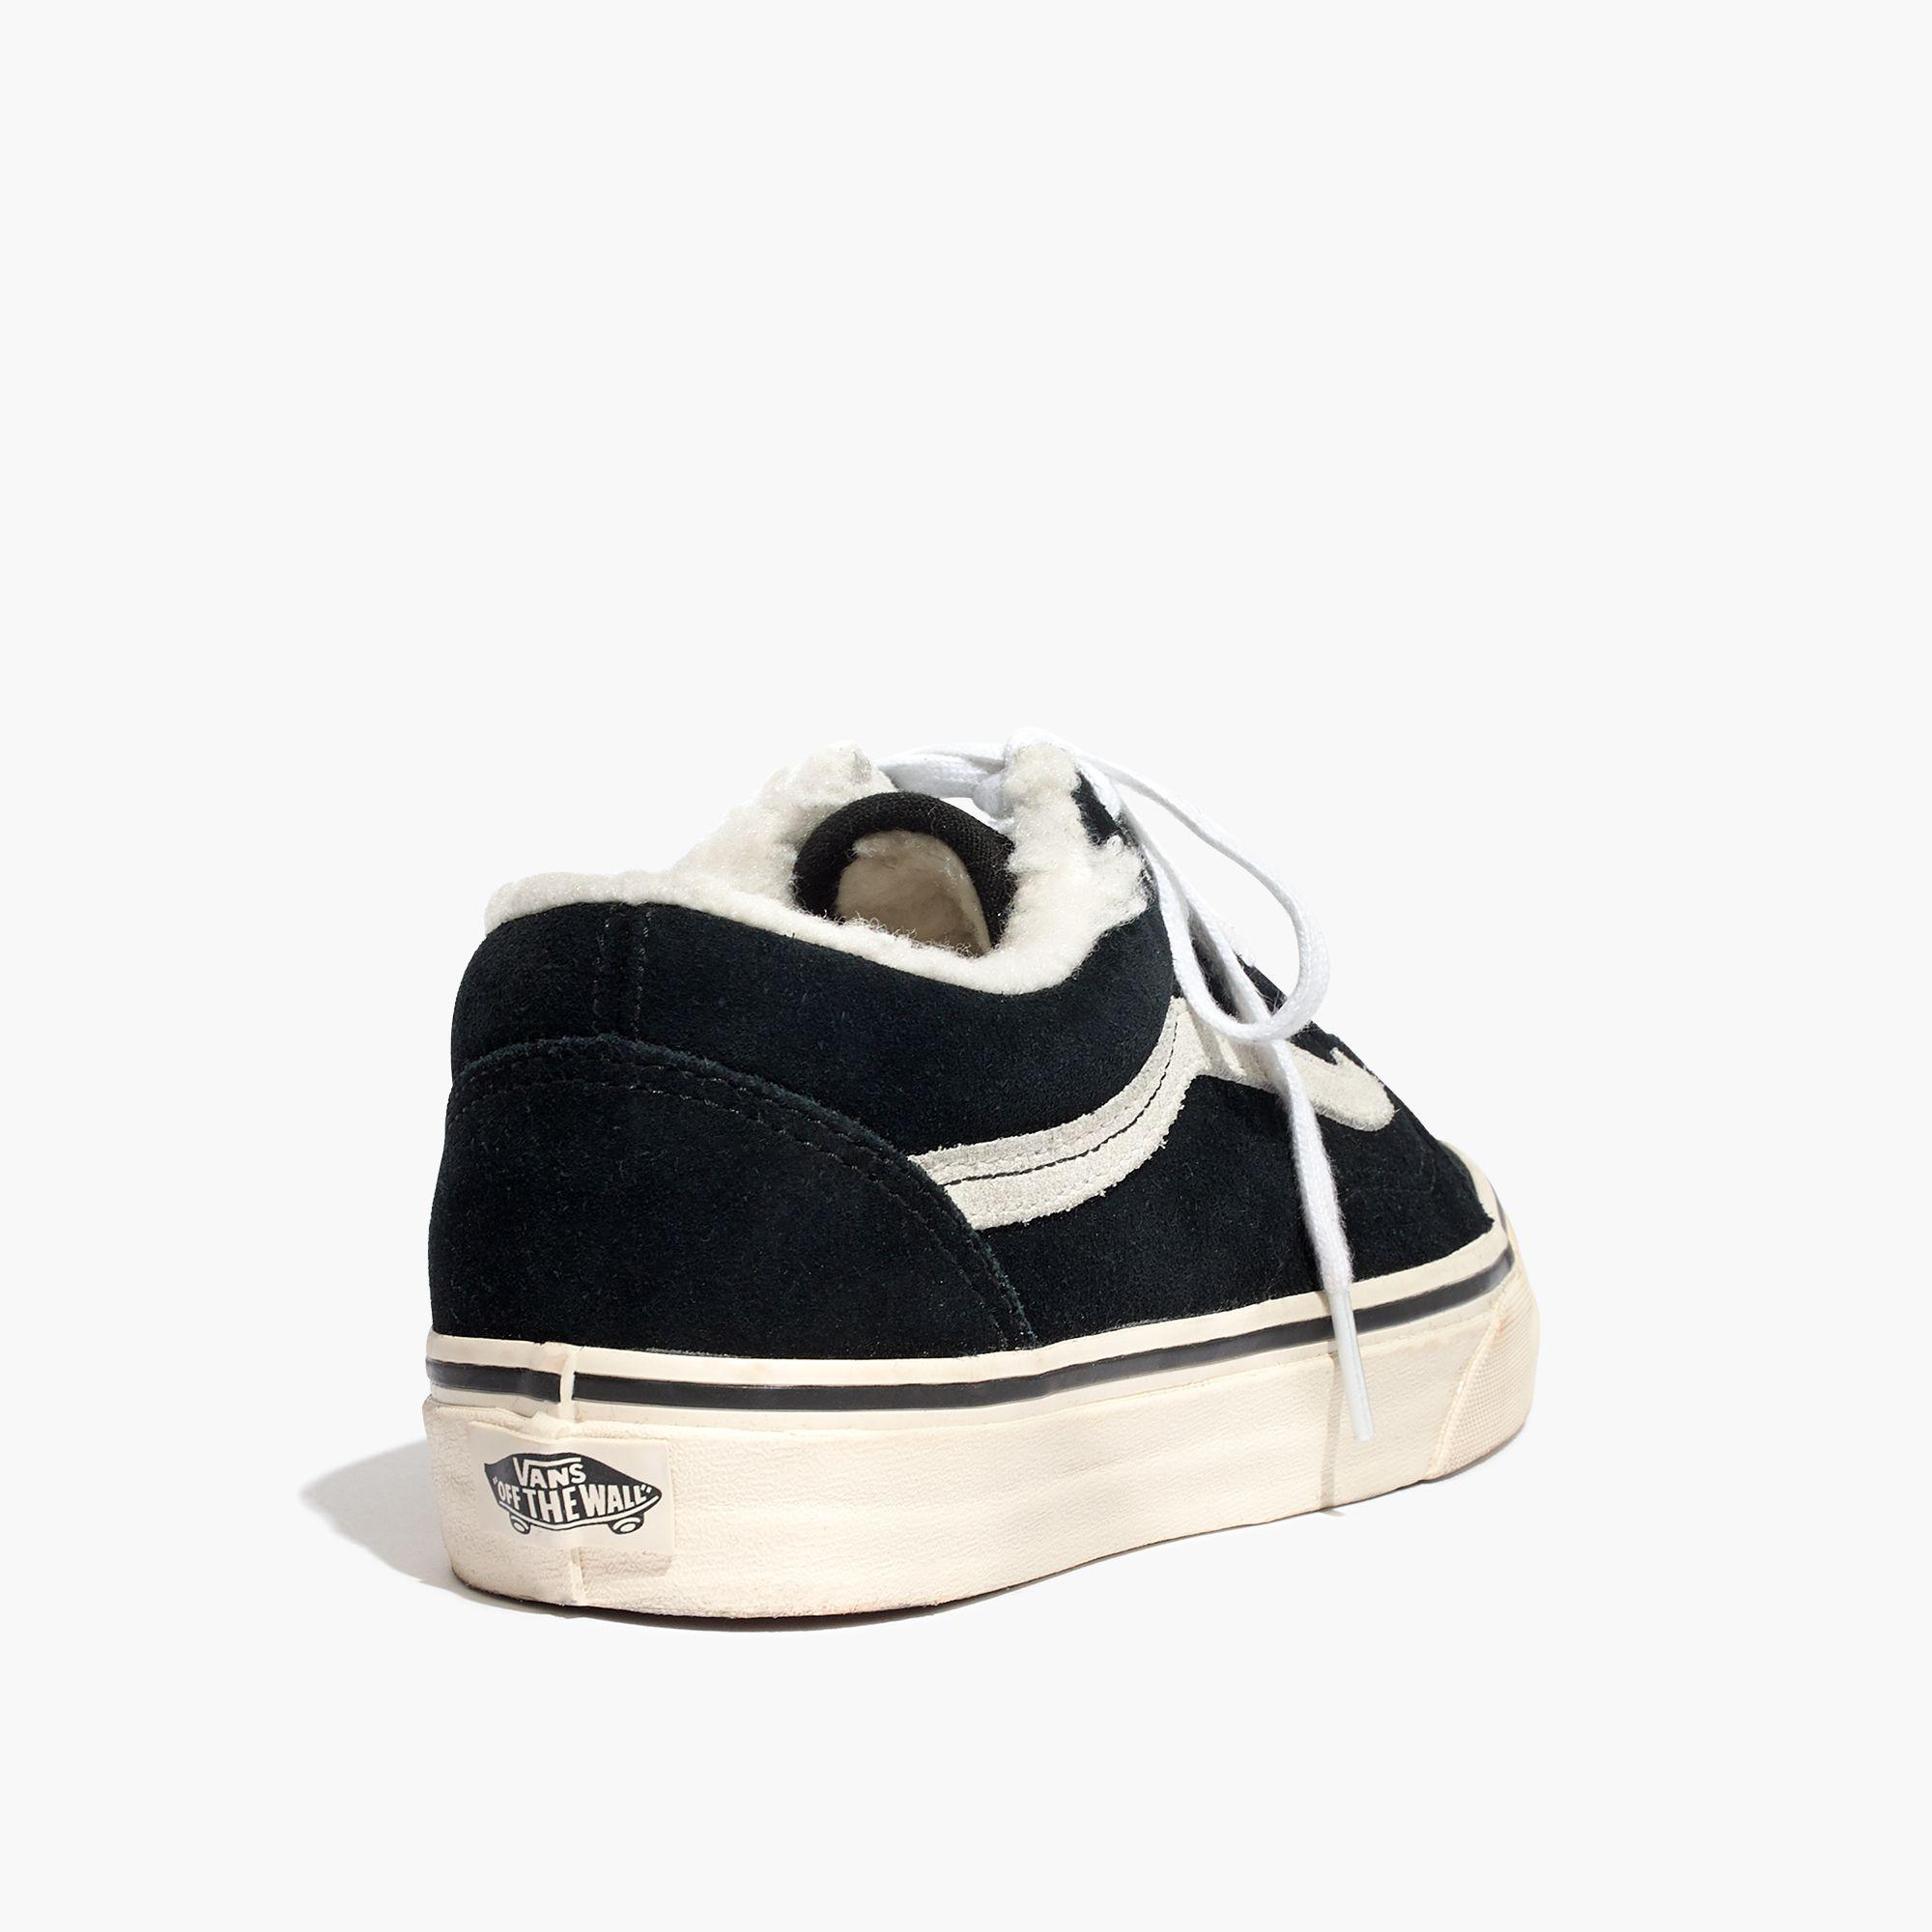 70fa971000 Lyst - Madewell X Vans® Unisex Old Skool Sneakers In Suede And ...